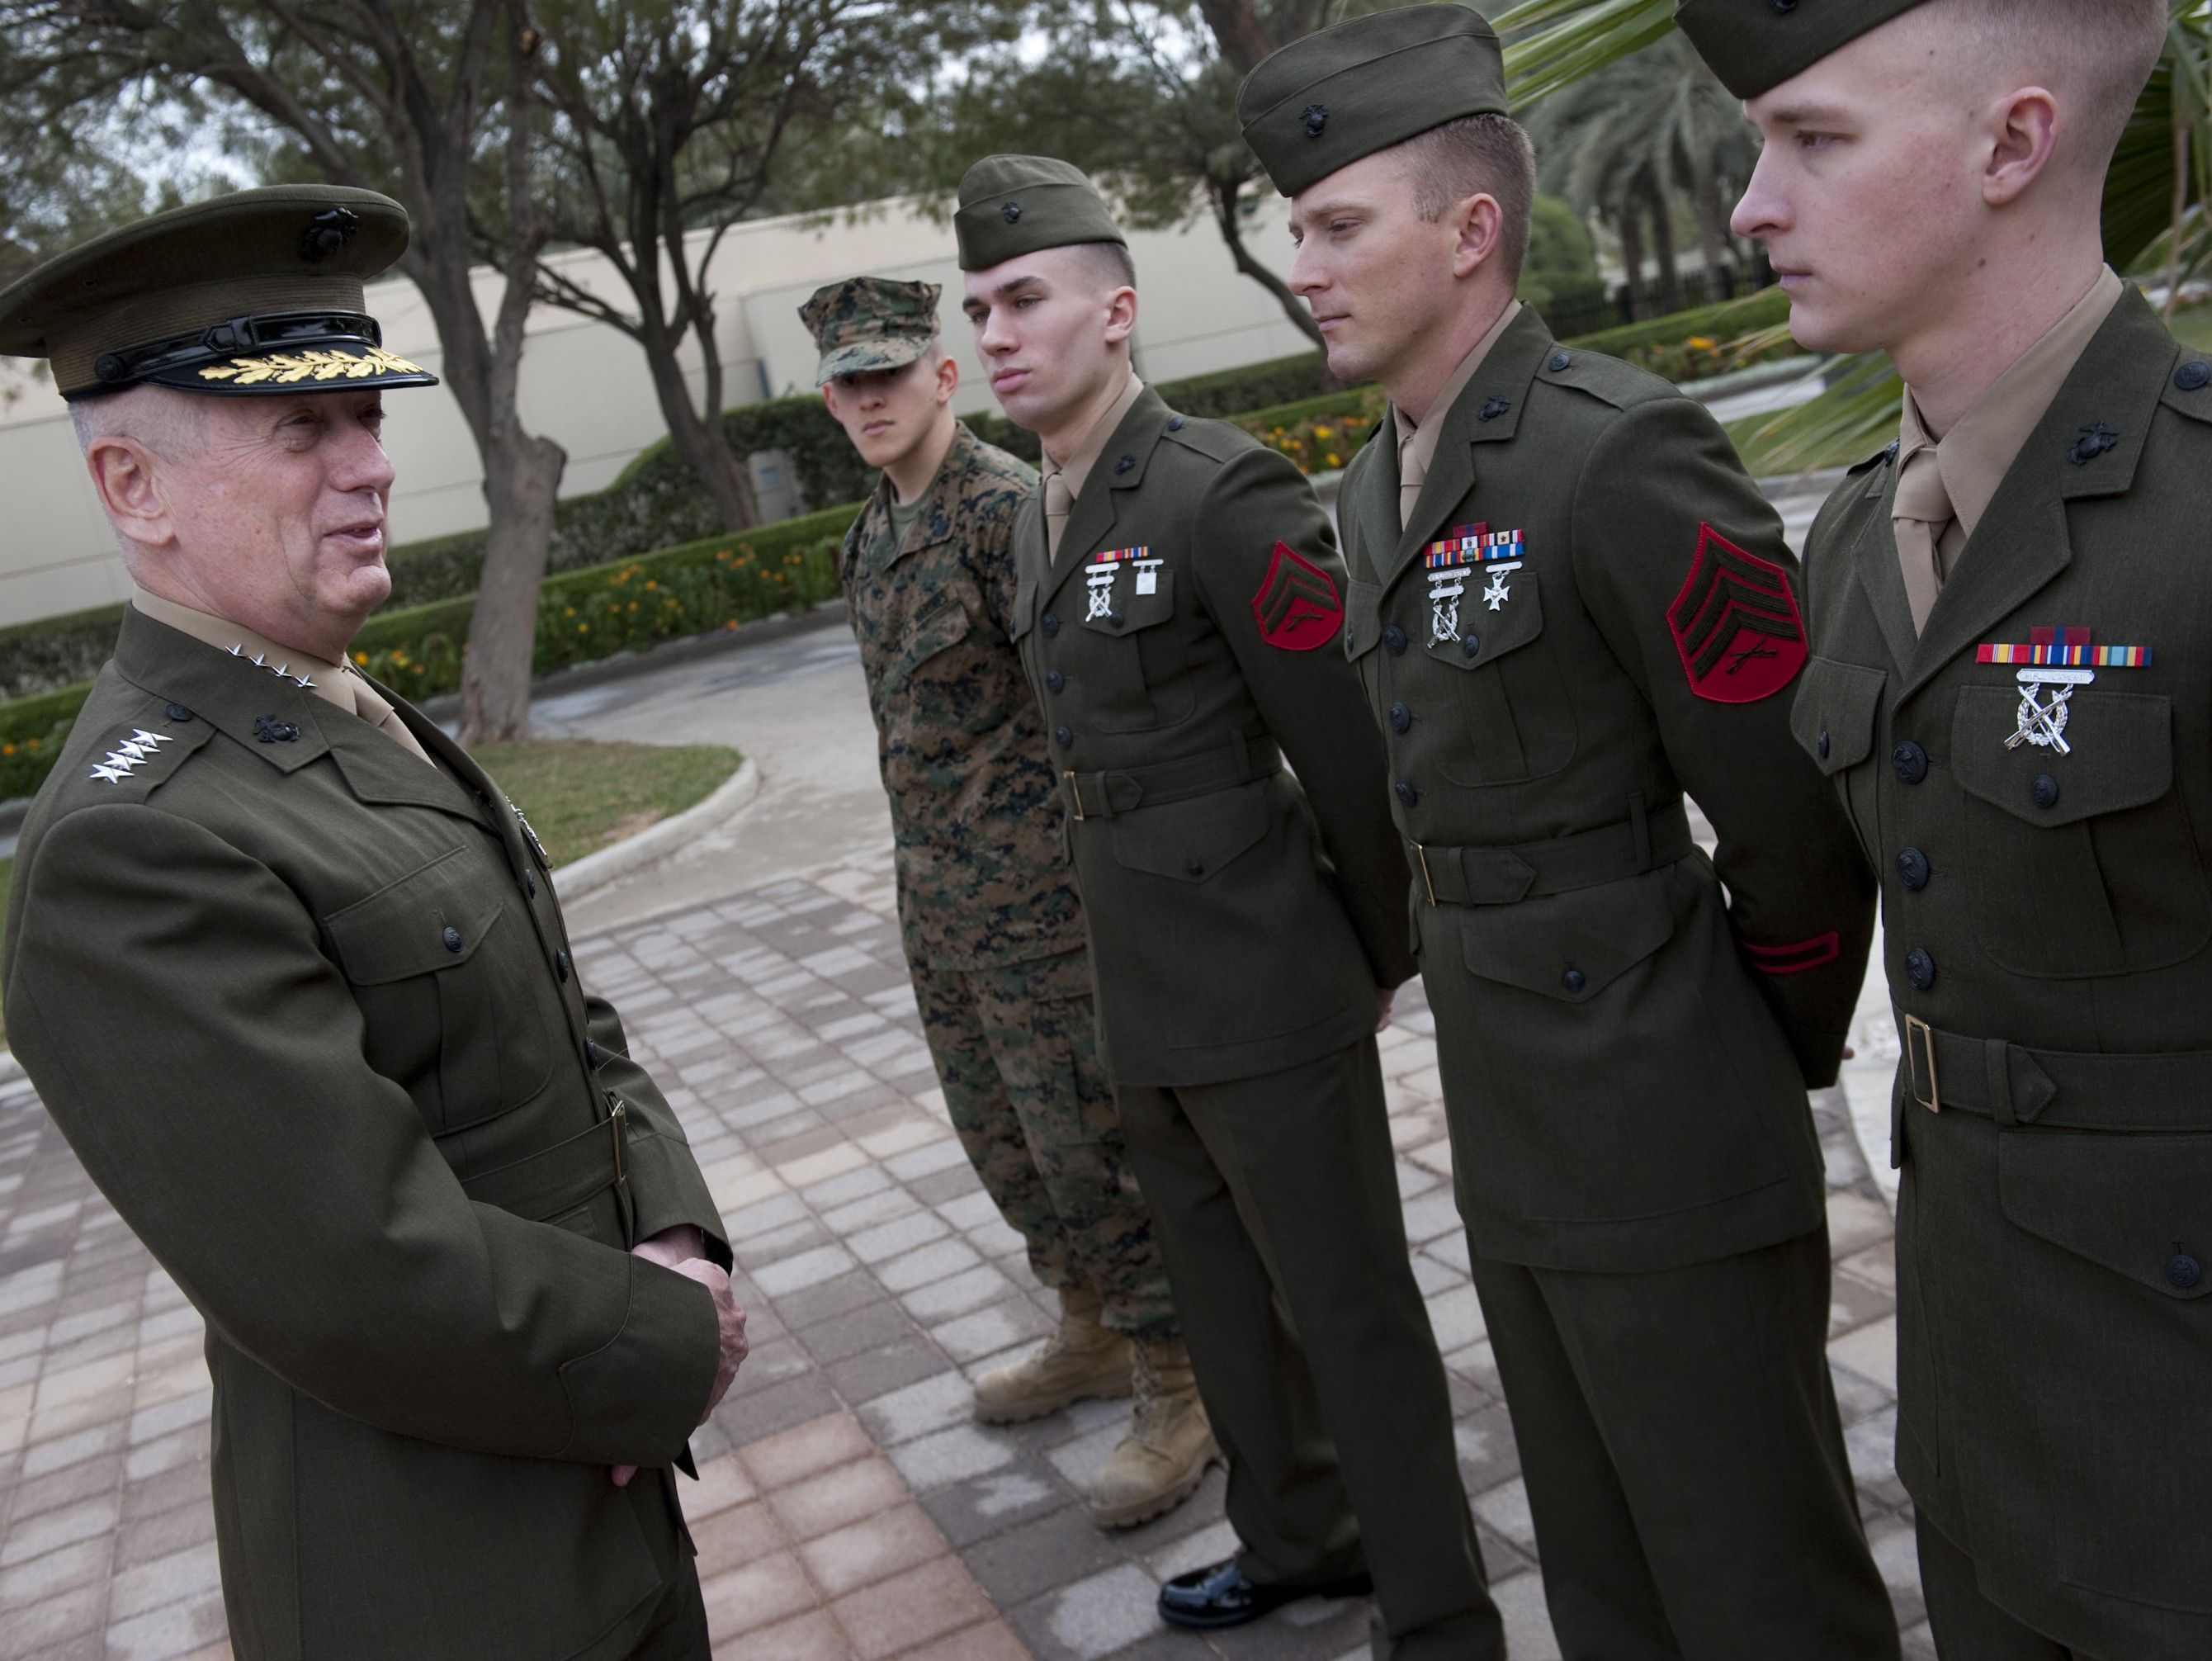 Legendary Marine General Jim Mattis On What Makes This Generation